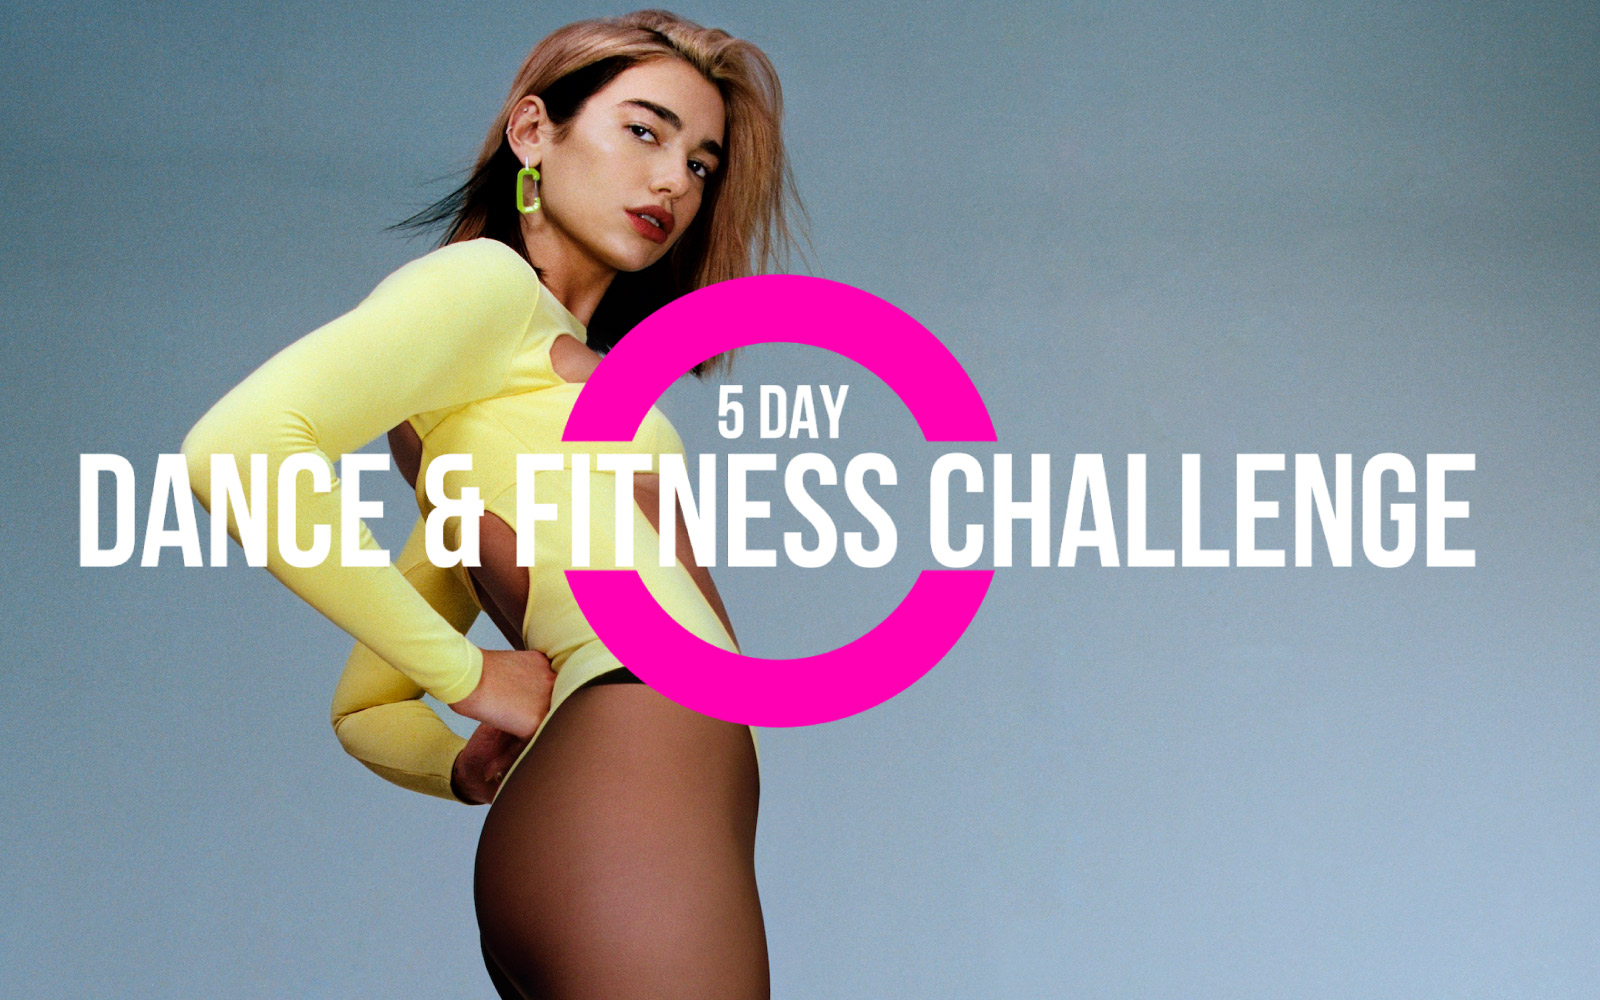 5 day DANCE & FITNESS CHALLENGE